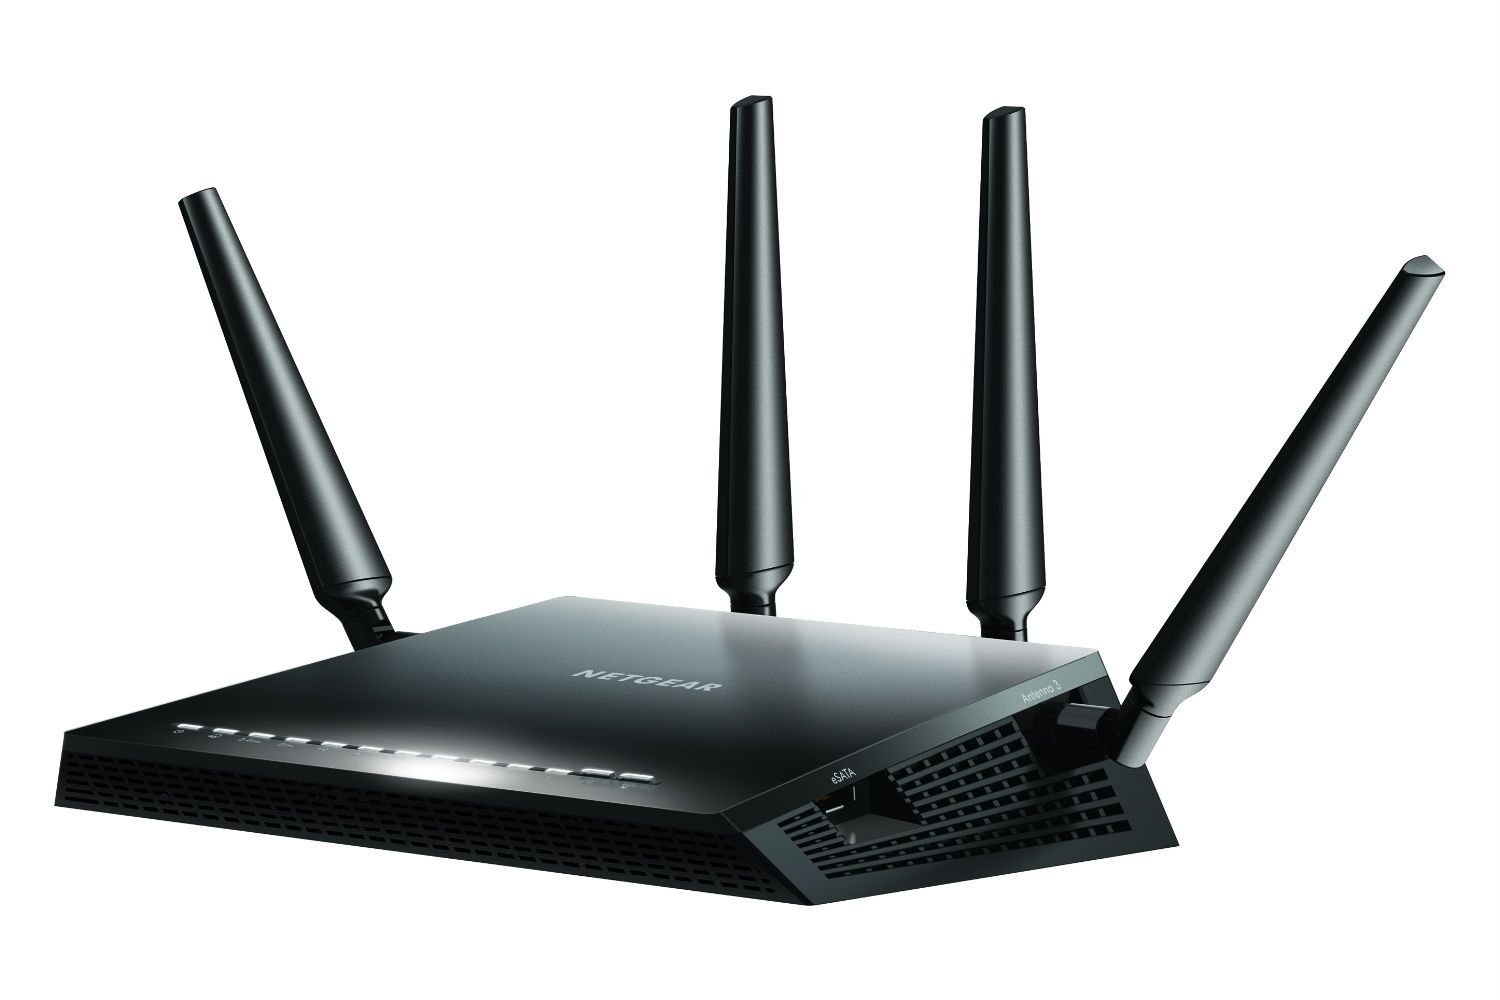 Netgear hauls a slew of networking gadgets to CES 2016